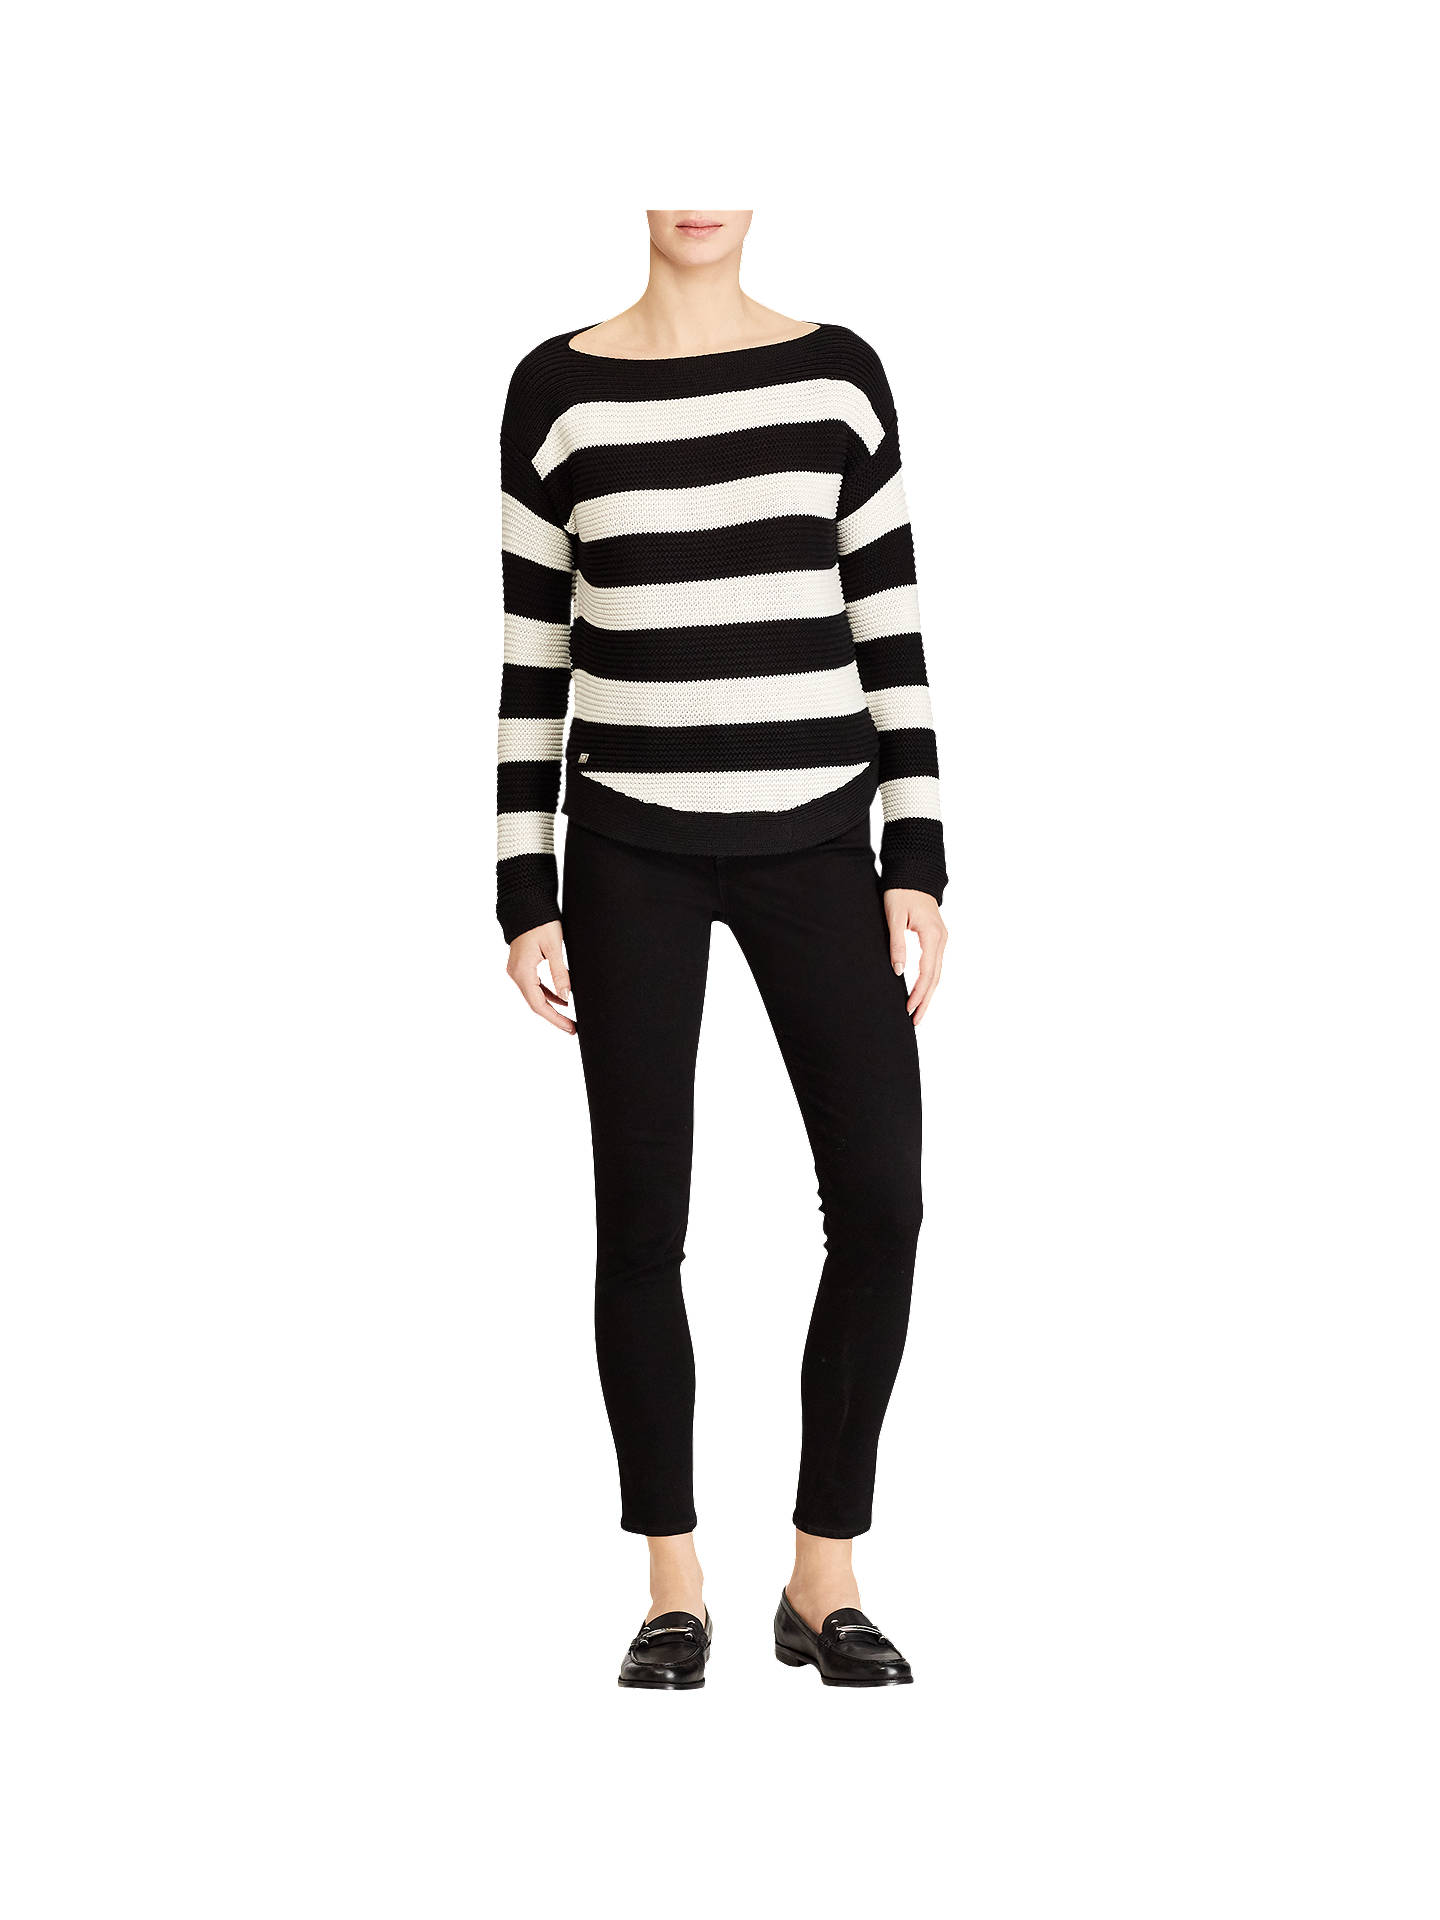 BuyLauren Ralph Lauren Vadrian Stripe Jumper, Polo Black/Mascarpone Cream, XS Online at johnlewis.com